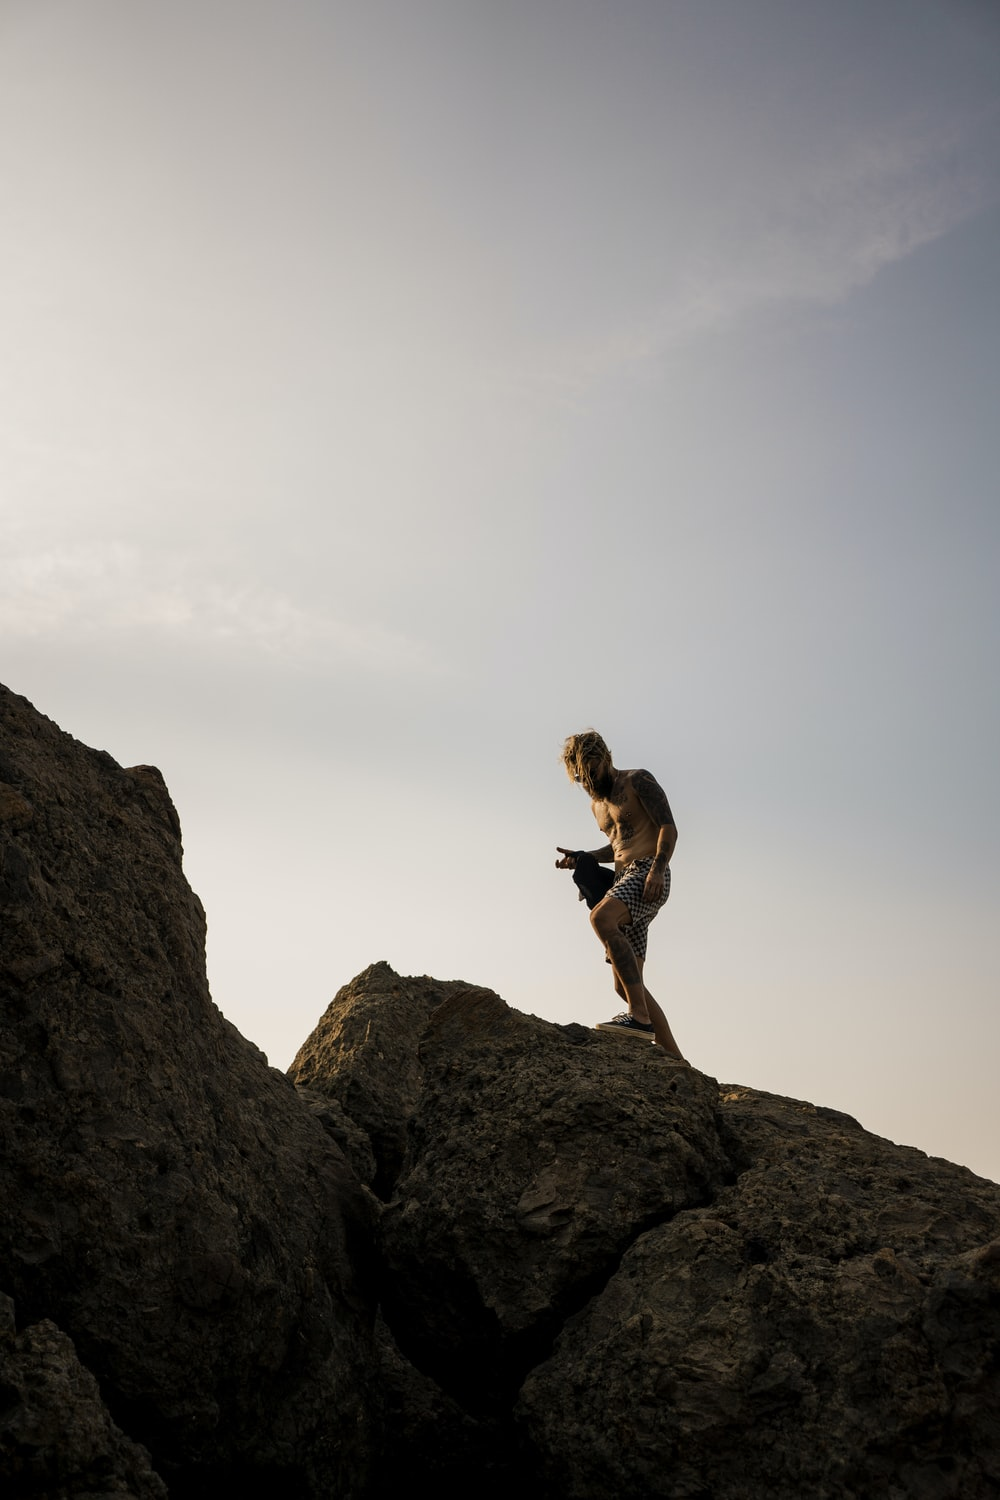 man wearing white shorts standing on brown rocks under clear blue sky